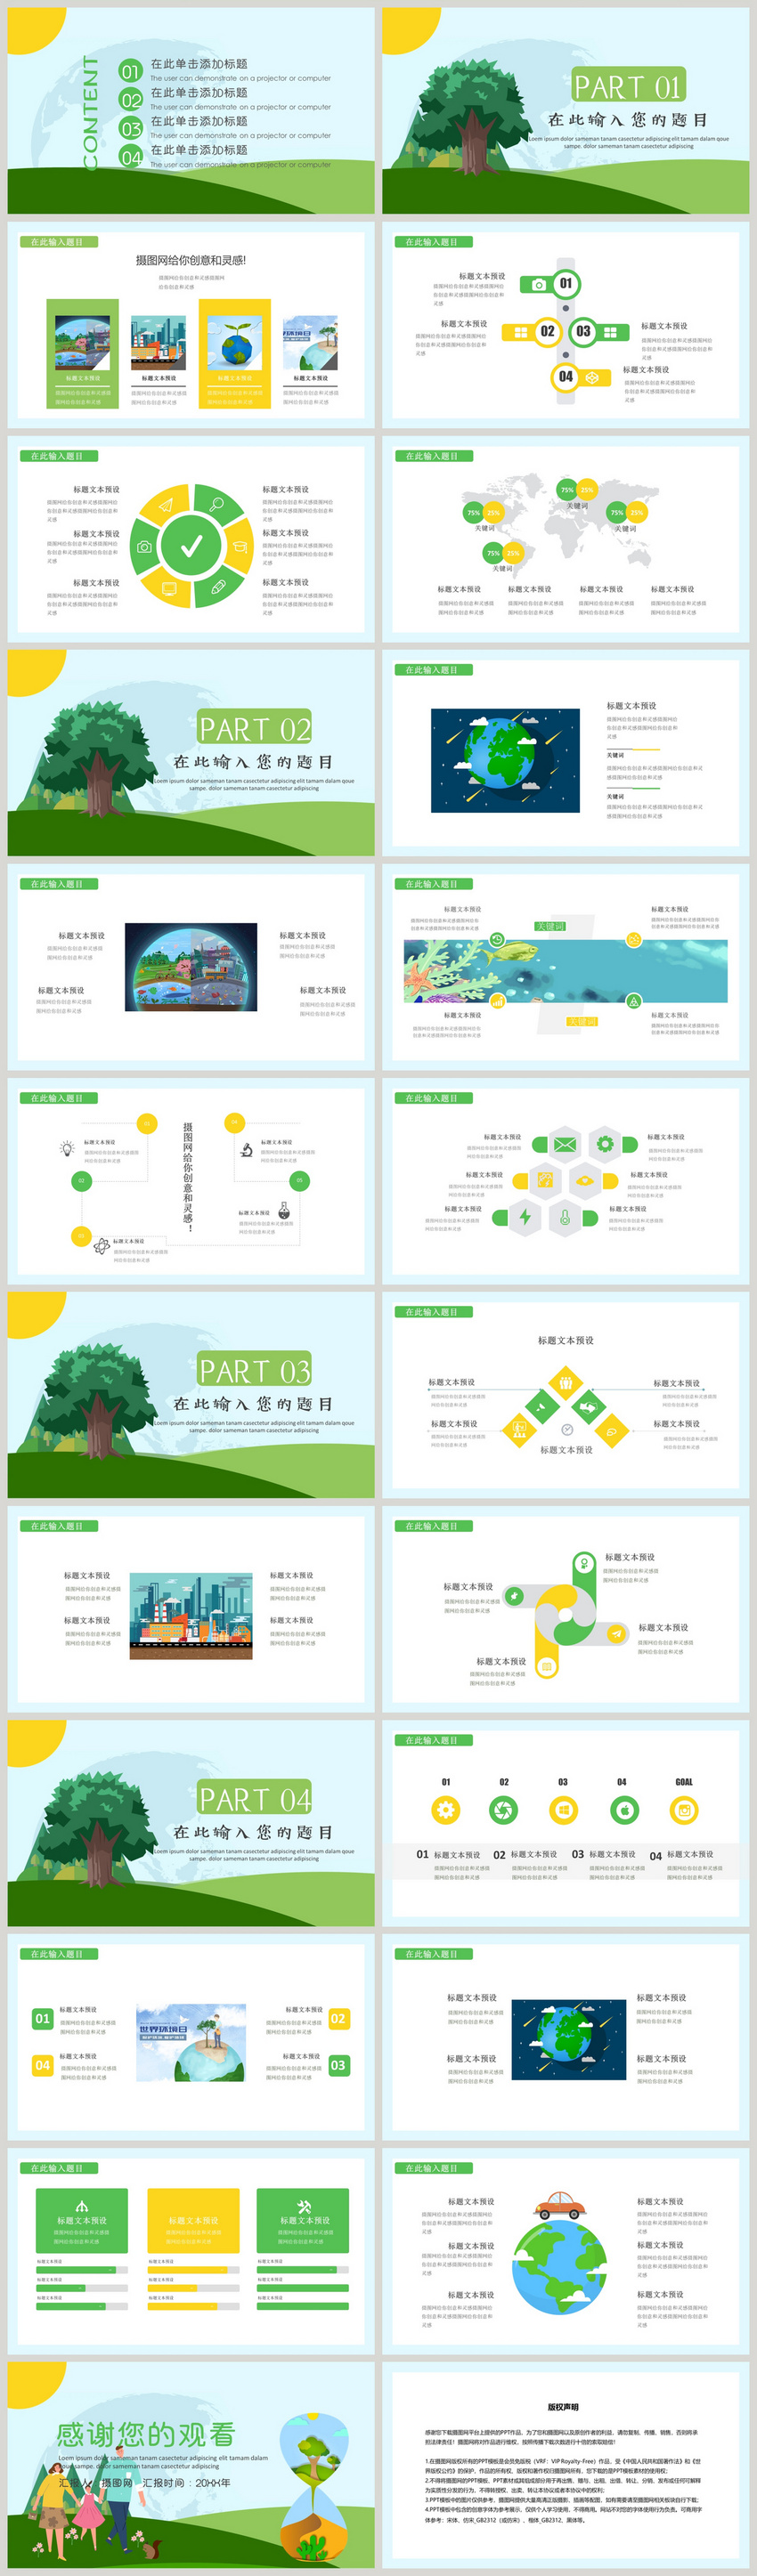 World Environment Day Ppt Template Powerpoint Templete Ppt Free Download 401306149 Lovepik Com